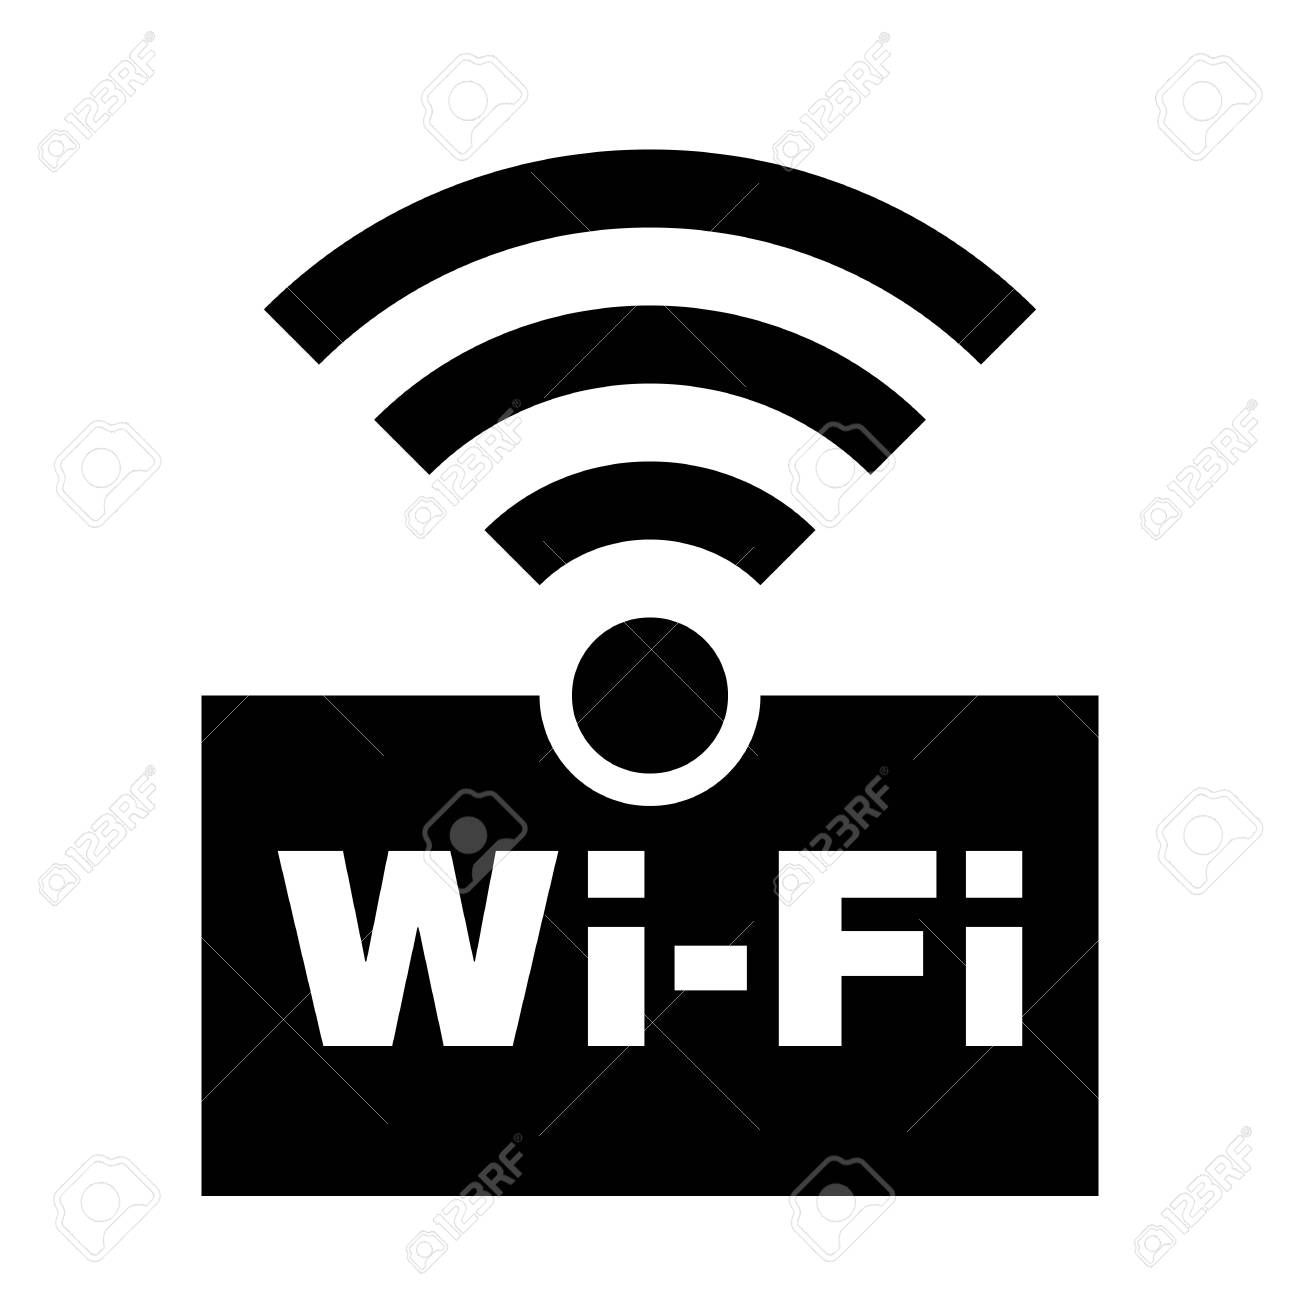 Wifi Symbol Icon Wireless Local Area Networking Vector Illustration Royalty Free Cliparts Vectors And Stock Illustration Image 121374070 Wifi symbol free vector we have about (31,139 files) free vector in ai, eps, cdr, svg vector illustration graphic art design format. wifi symbol icon wireless local area networking vector illustration